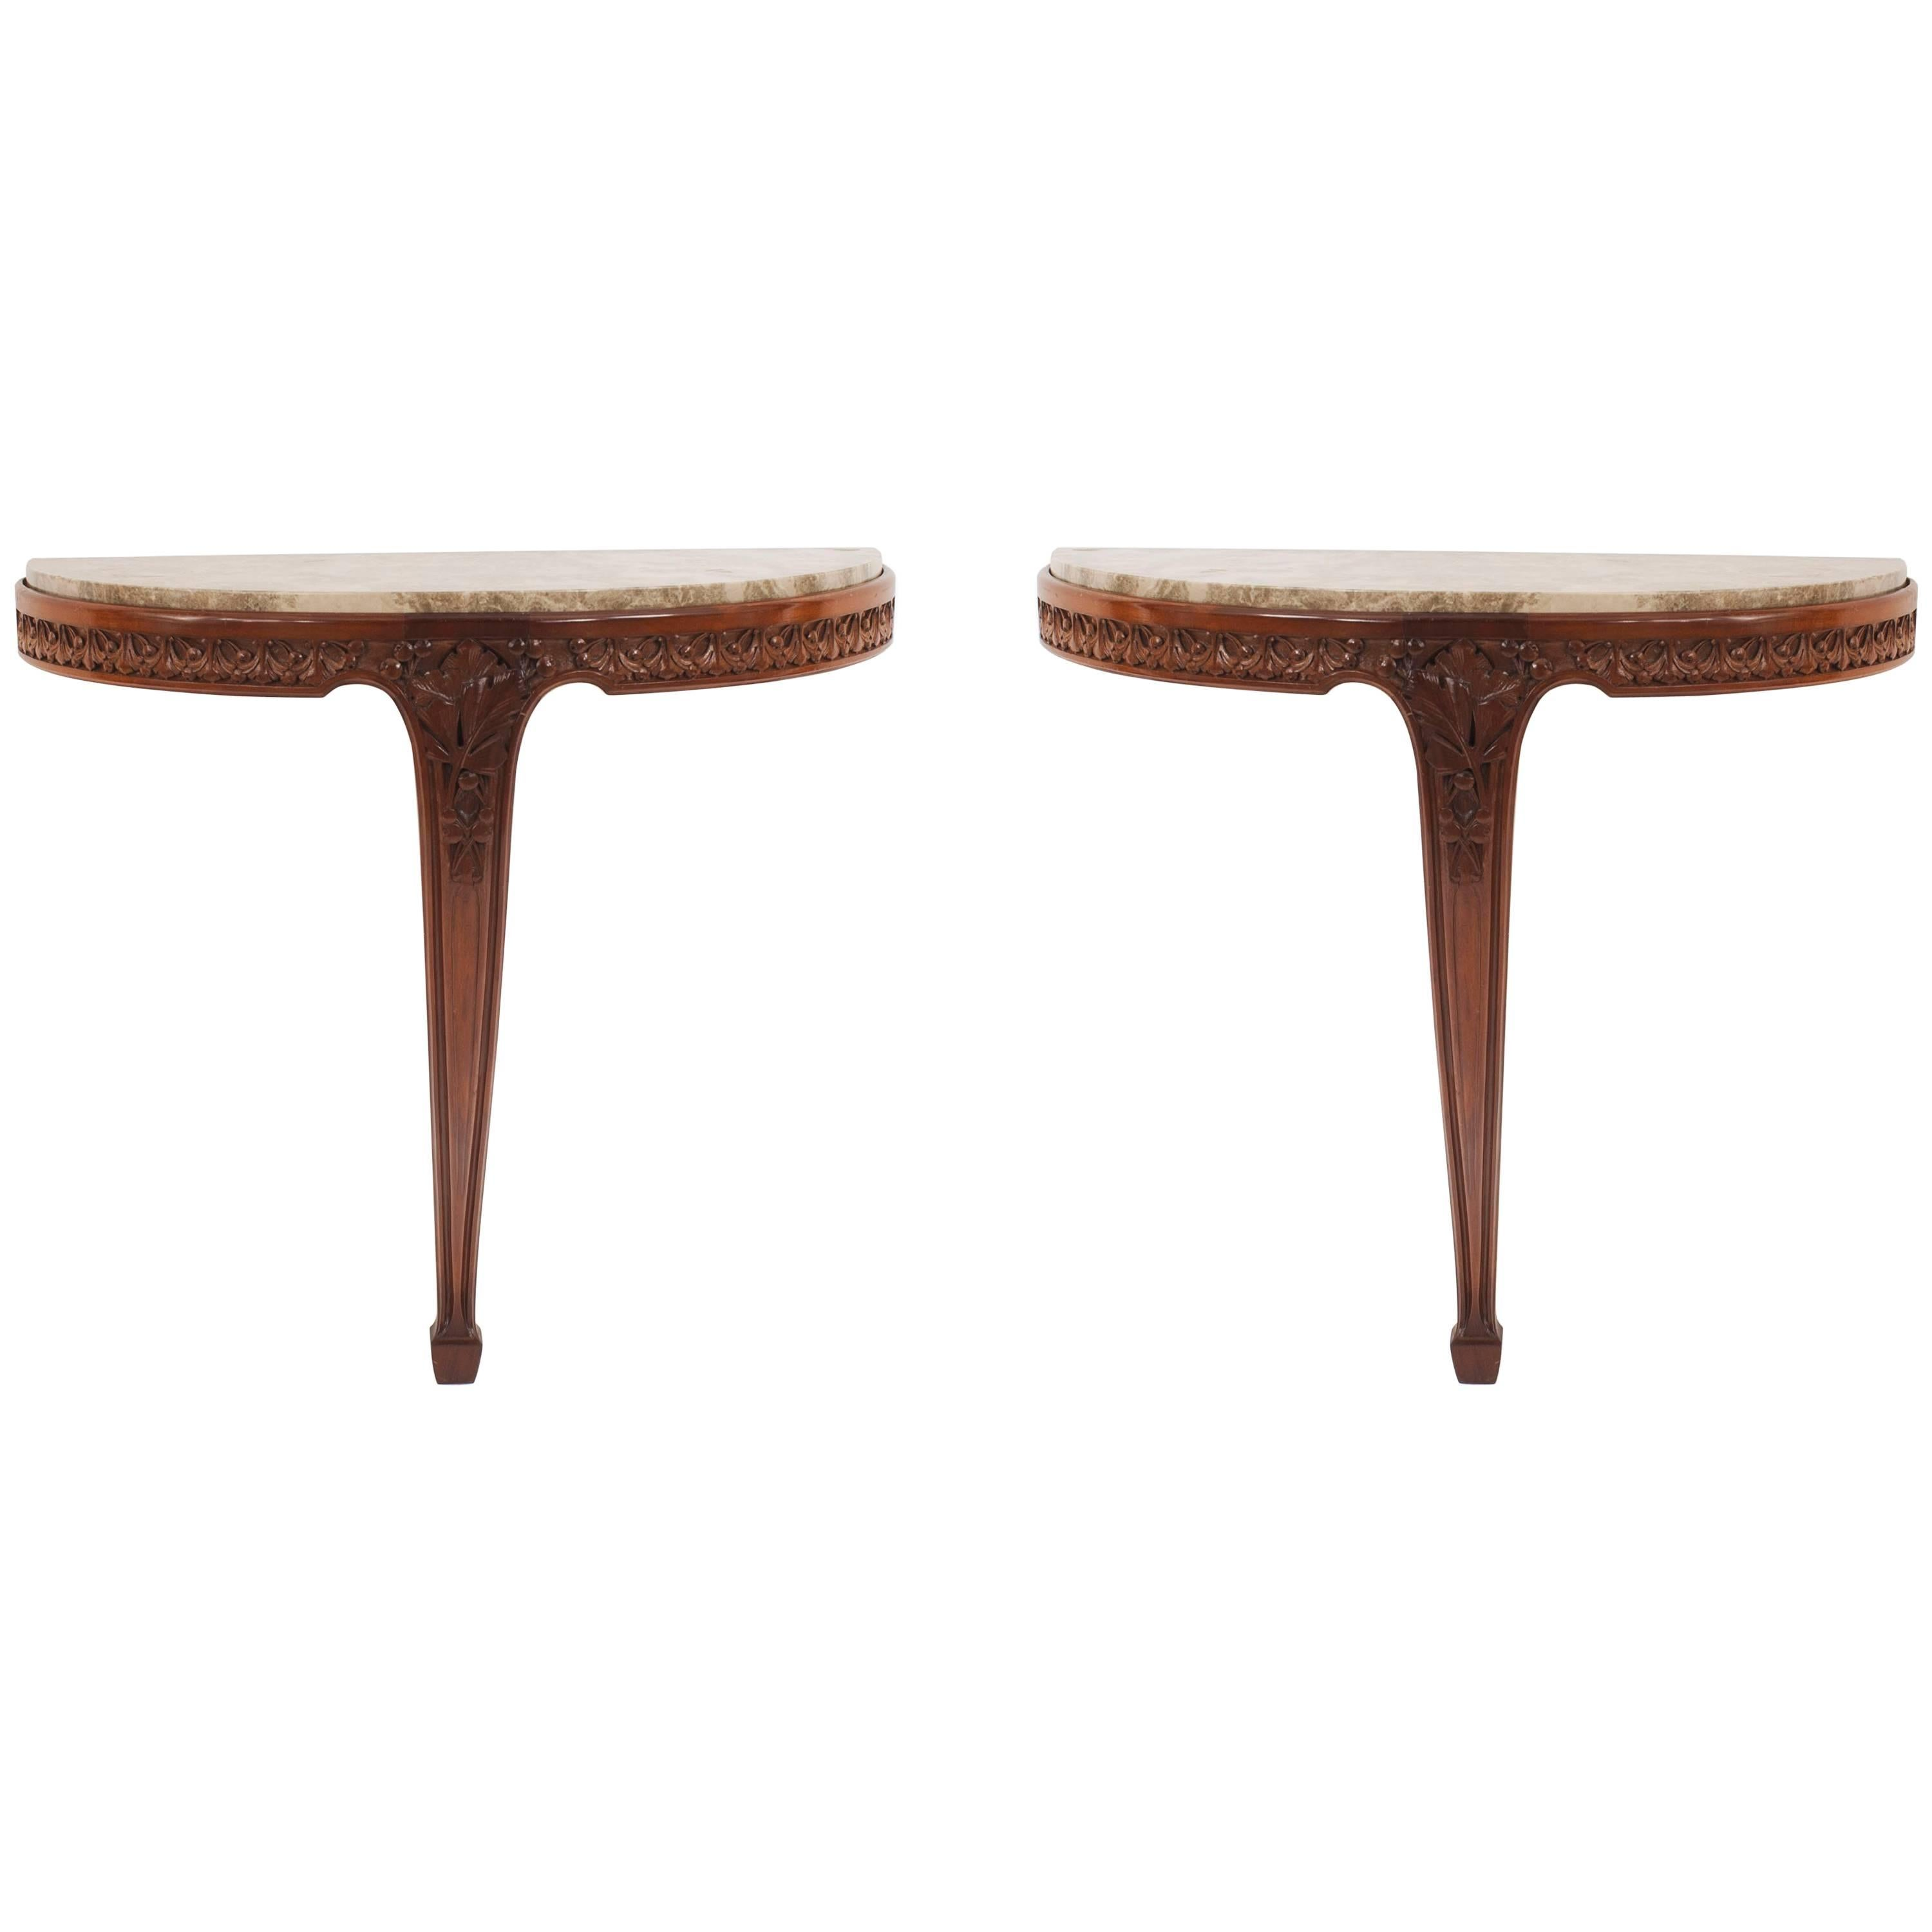 Pair of French Art Nouveau Mahogany Console Tables